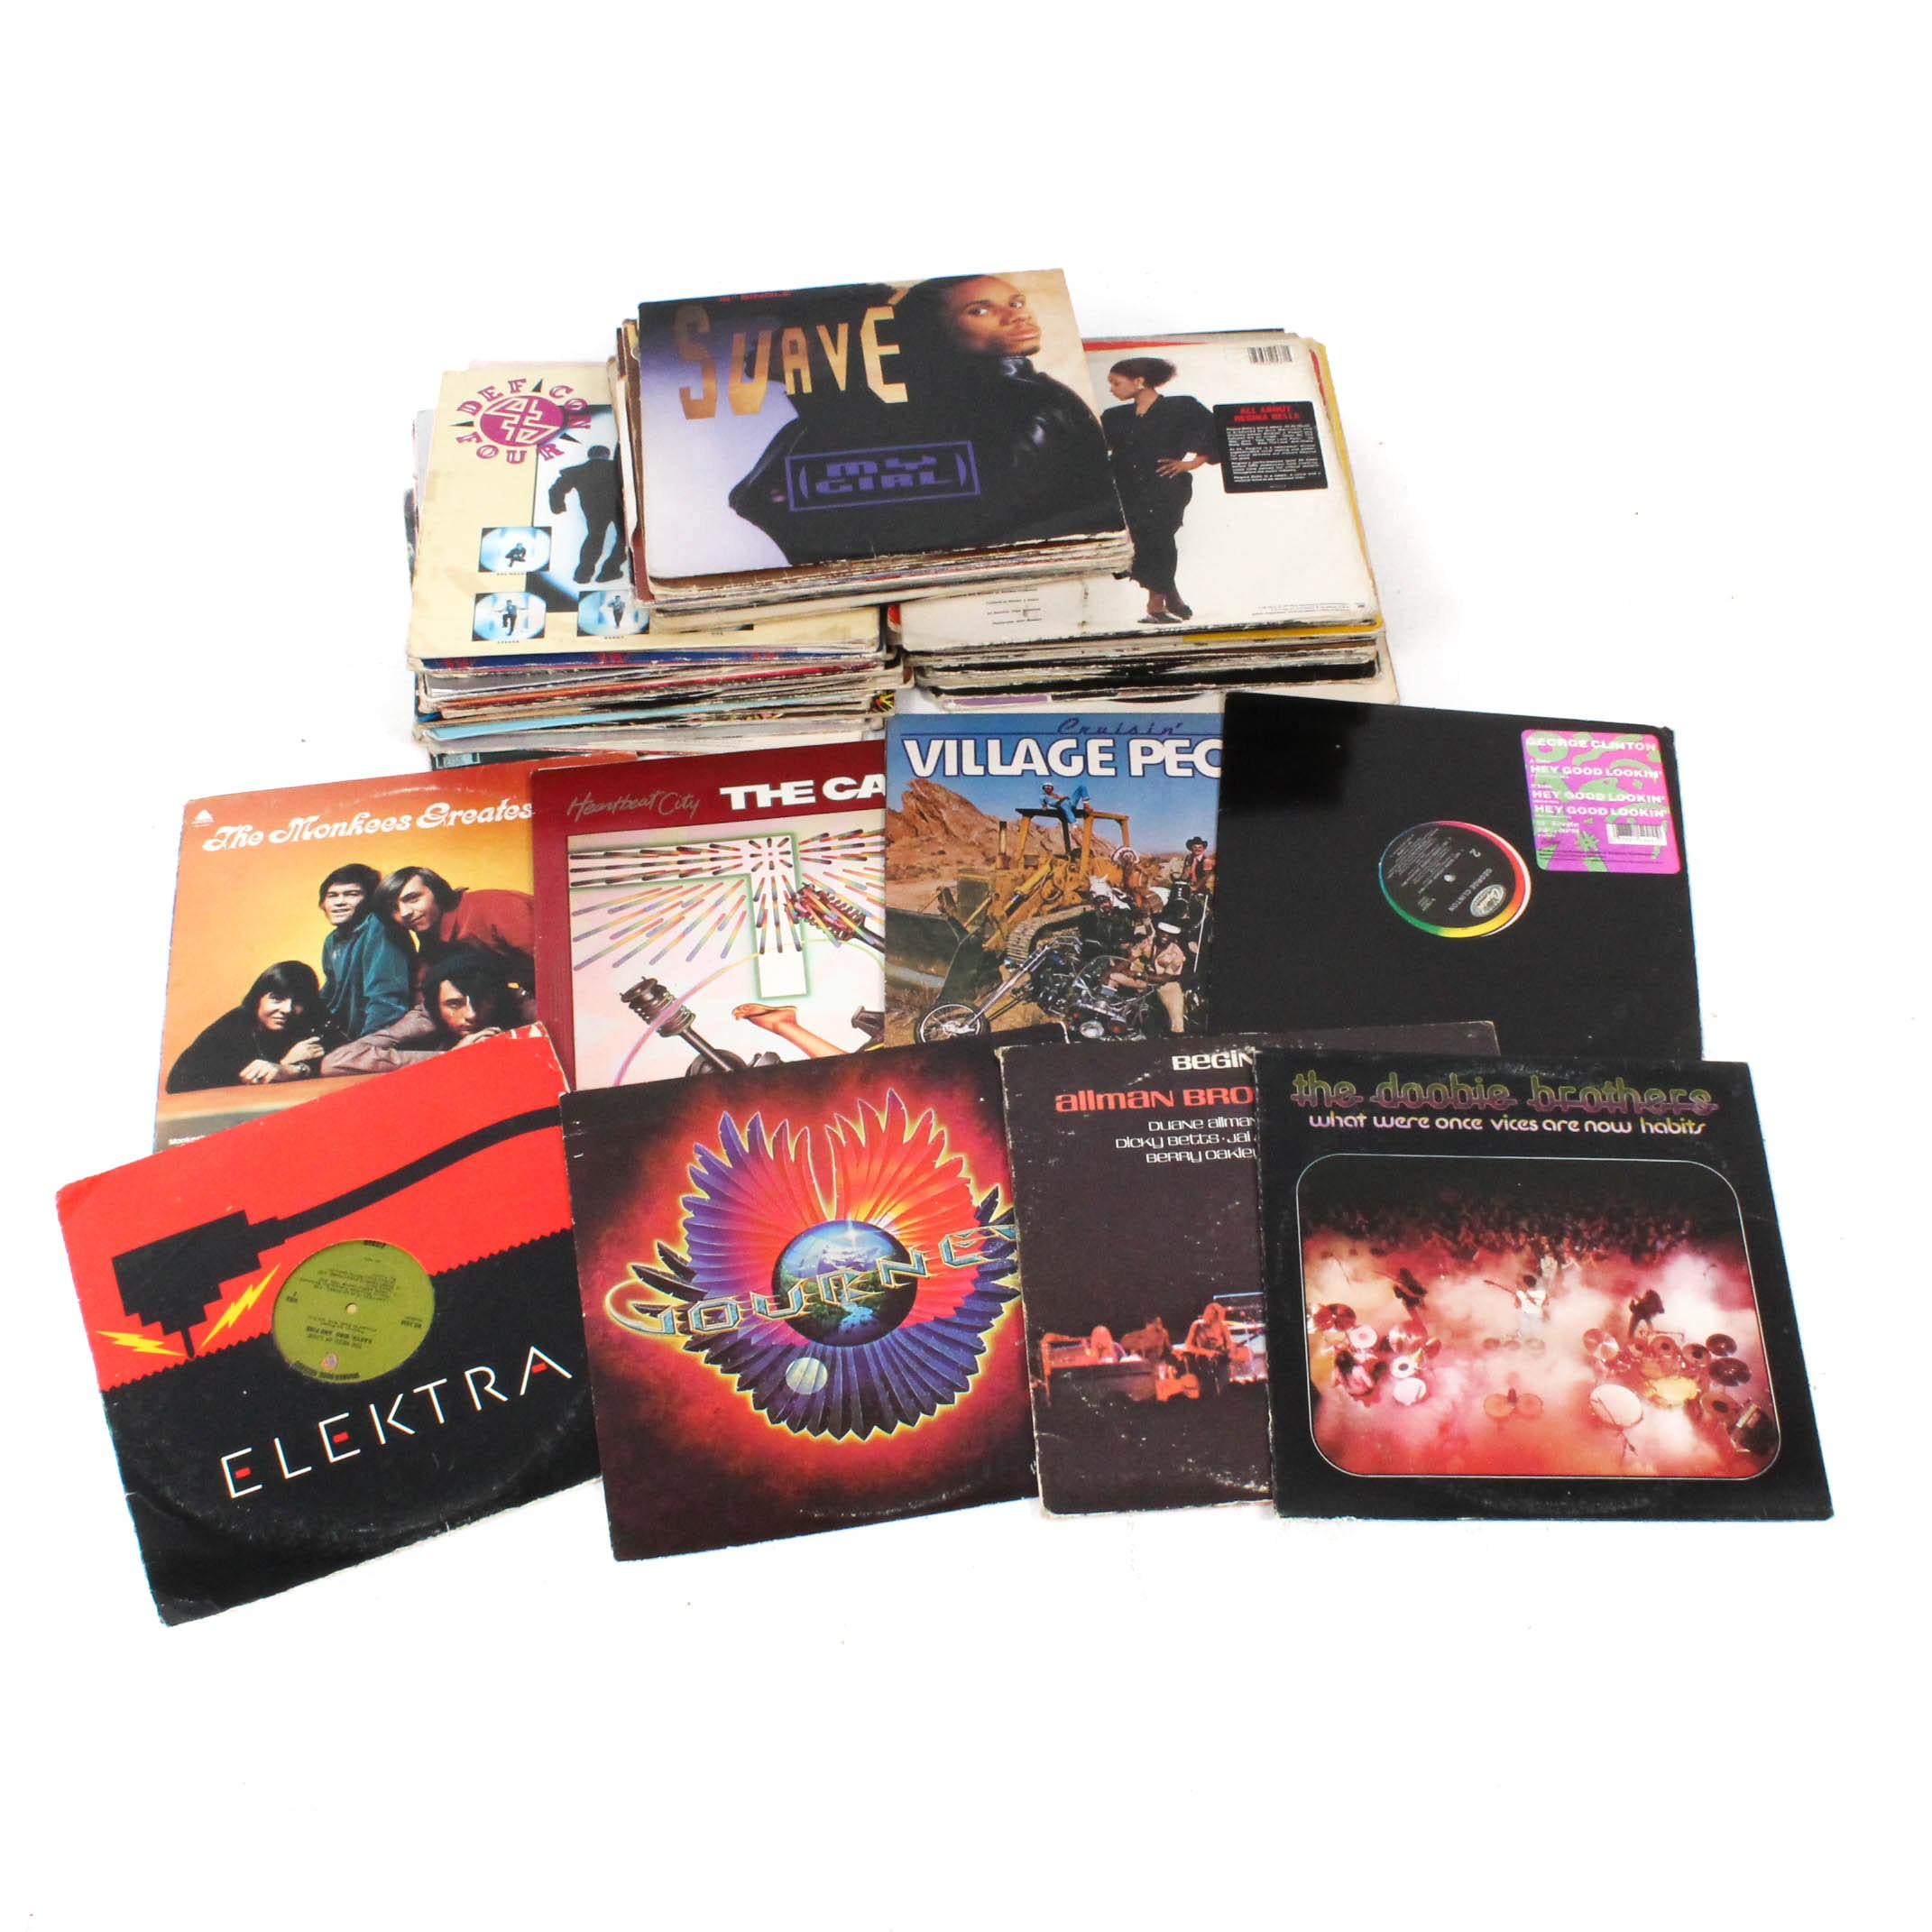 Vinyl Records Featuring The Allman Brothers Band, The Doobie Brothers and More